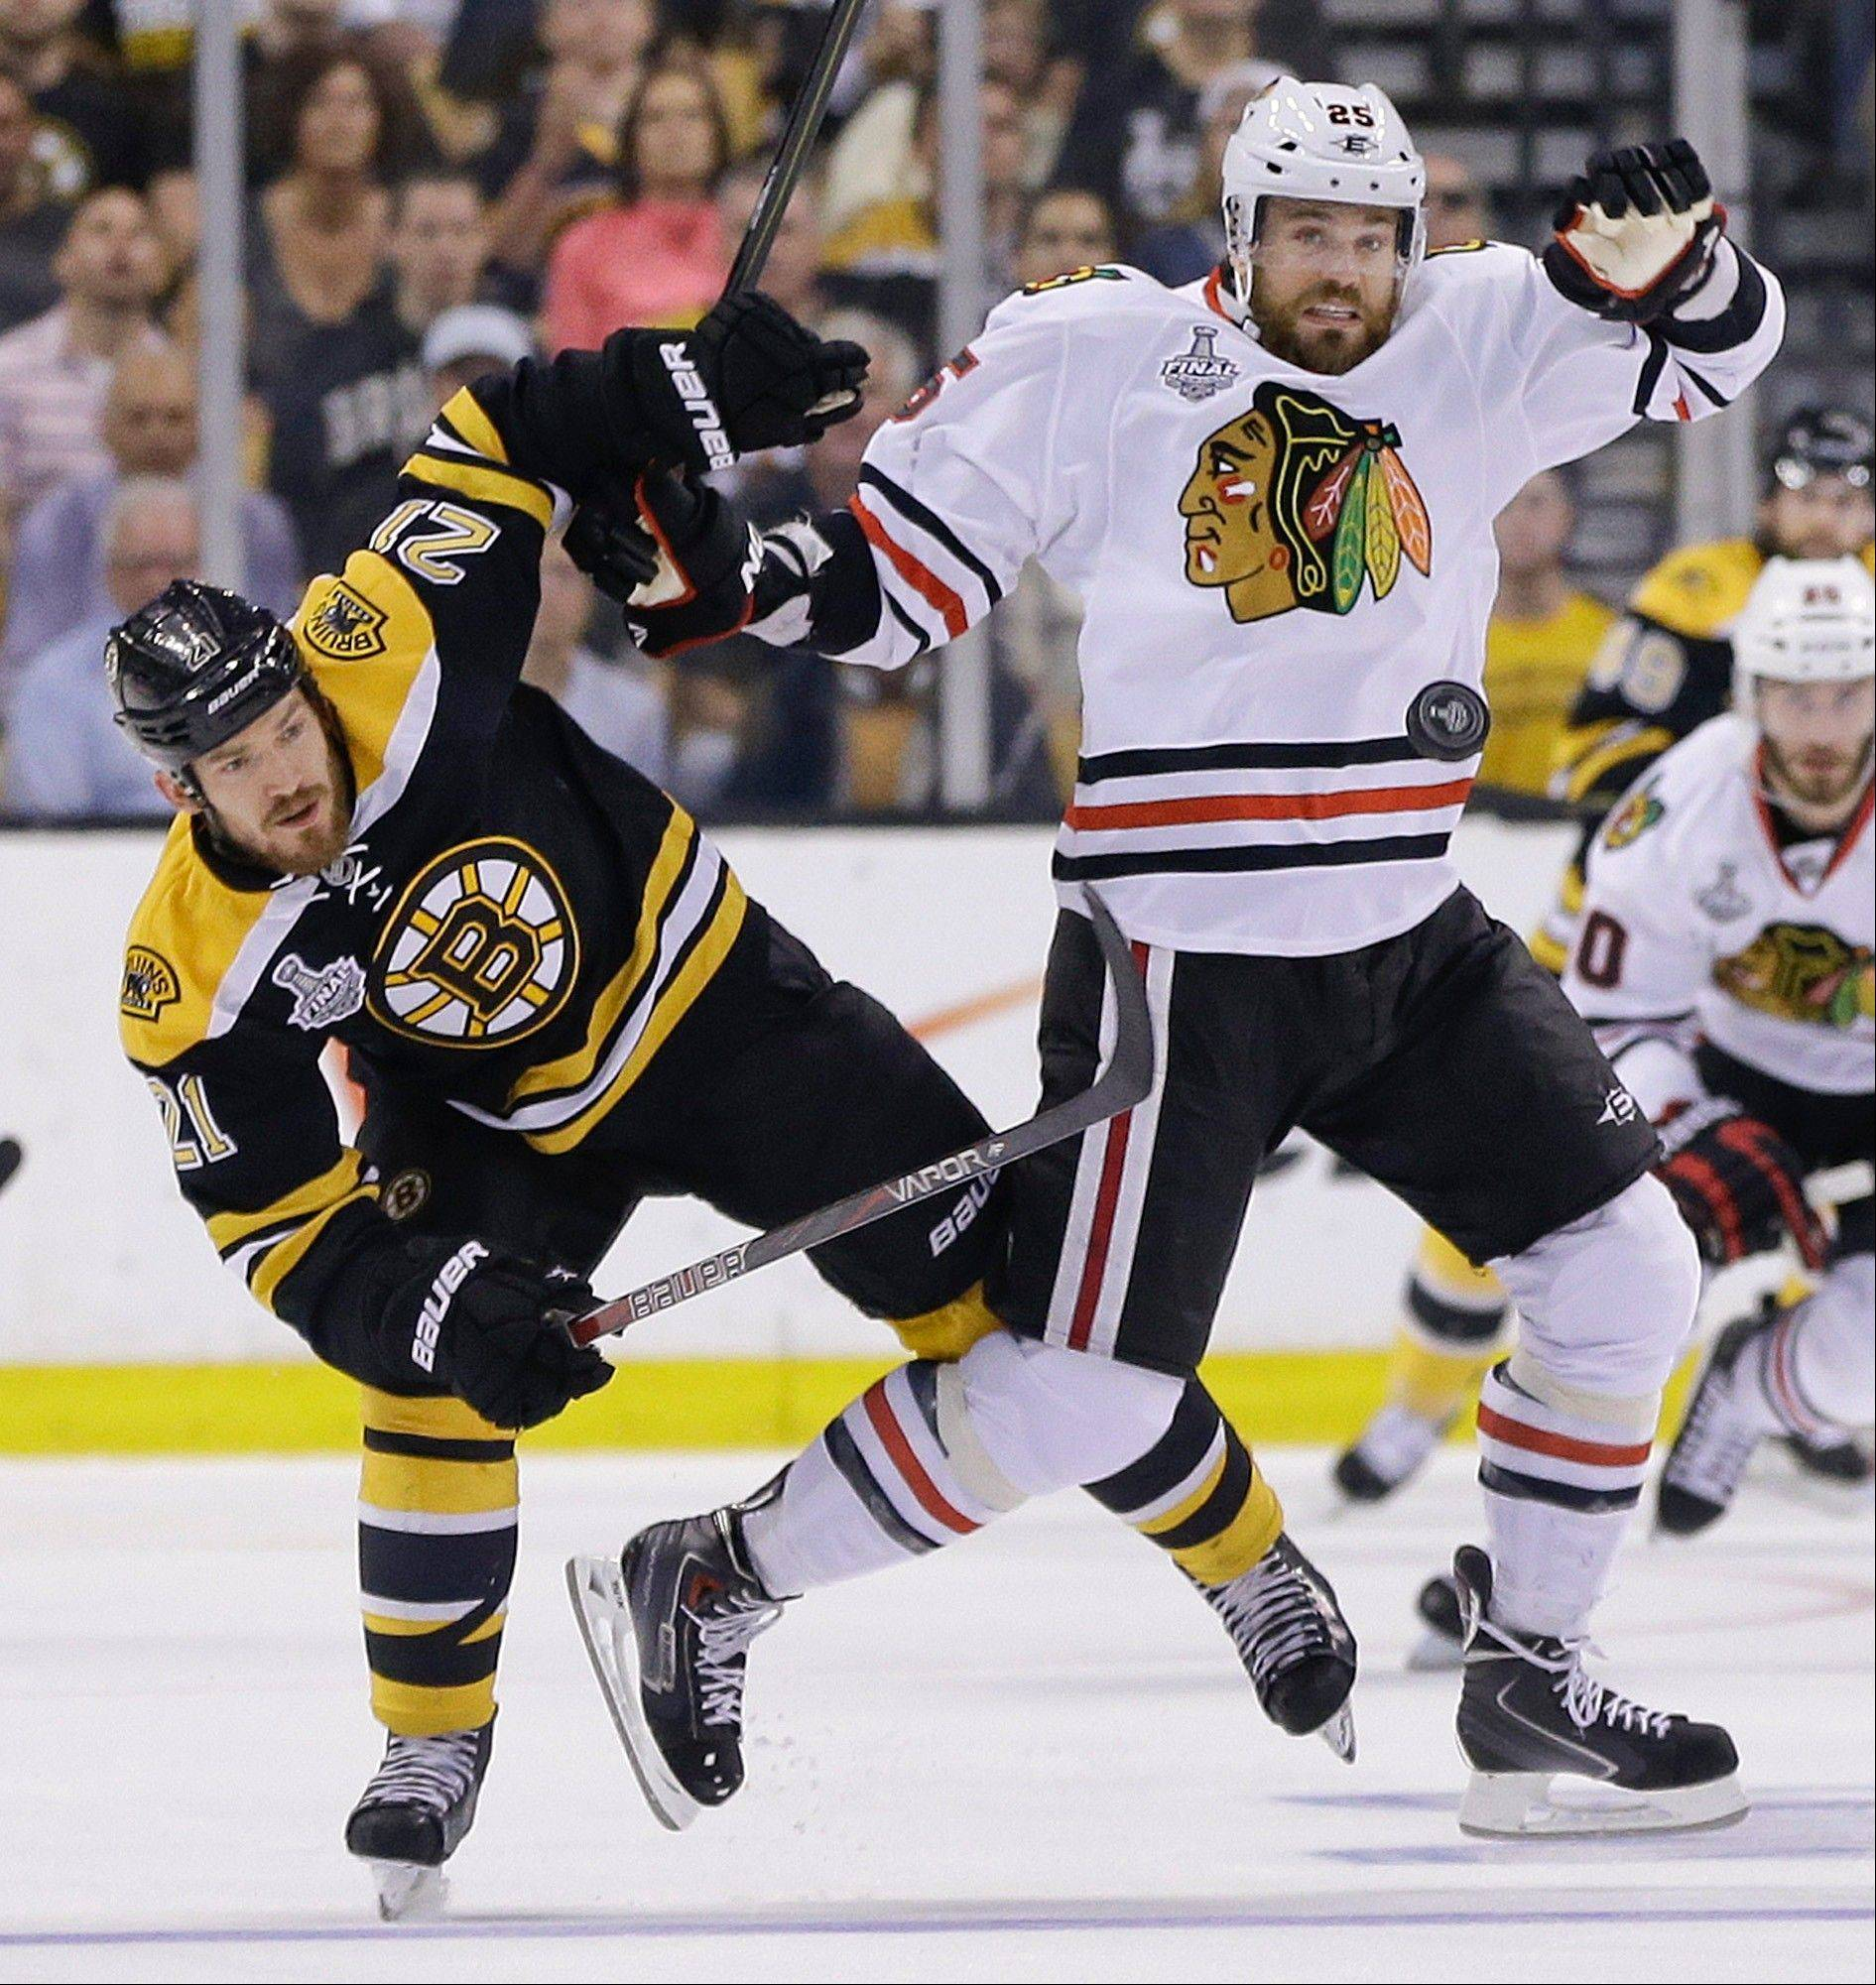 Boston Bruins defenseman Andrew Ference (21) and Chicago Blackhawks center Patrick Sharp (10) fight for position as the puck passes during the first period in Game 6 of the Stanley Cup Finals Monday in Boston.